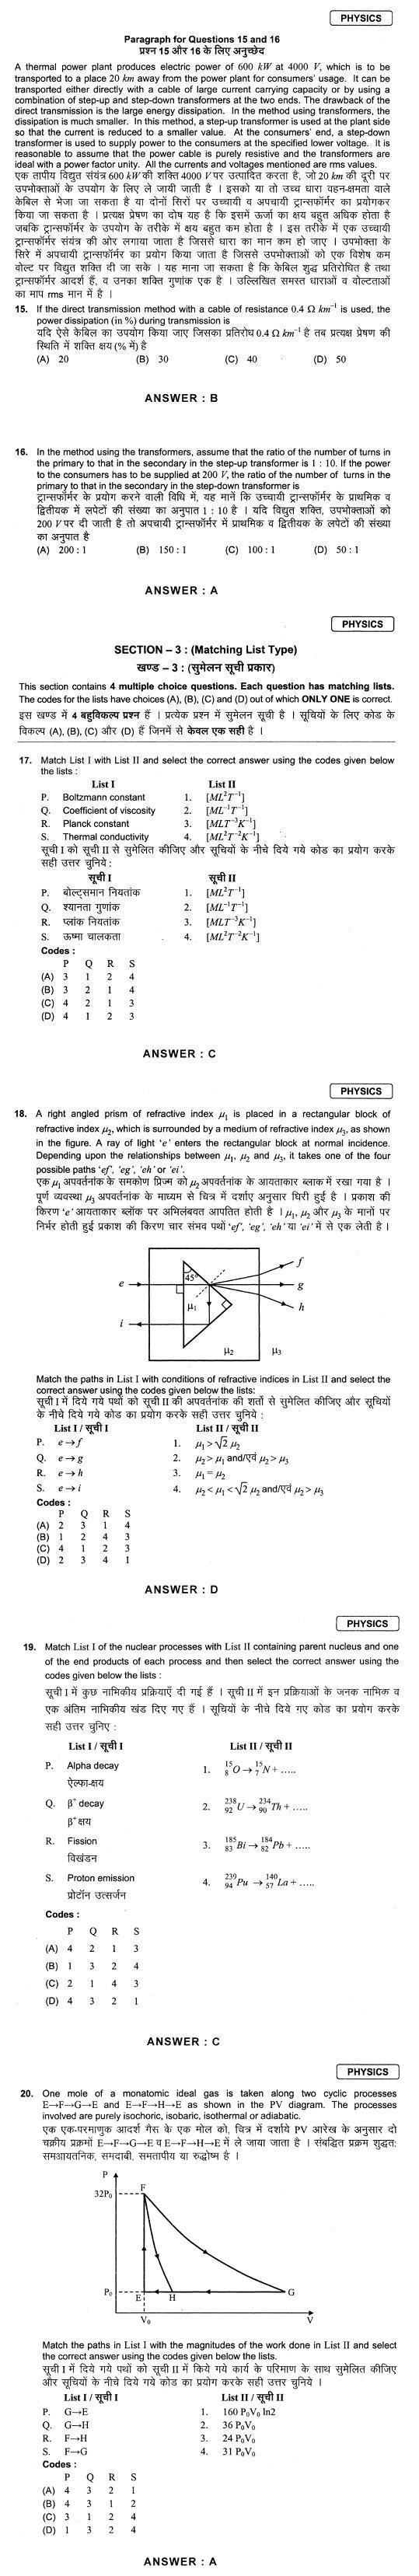 JEE Advanced 2013 Question Paper with Answers Official   Paper 2   jee advanced  Image